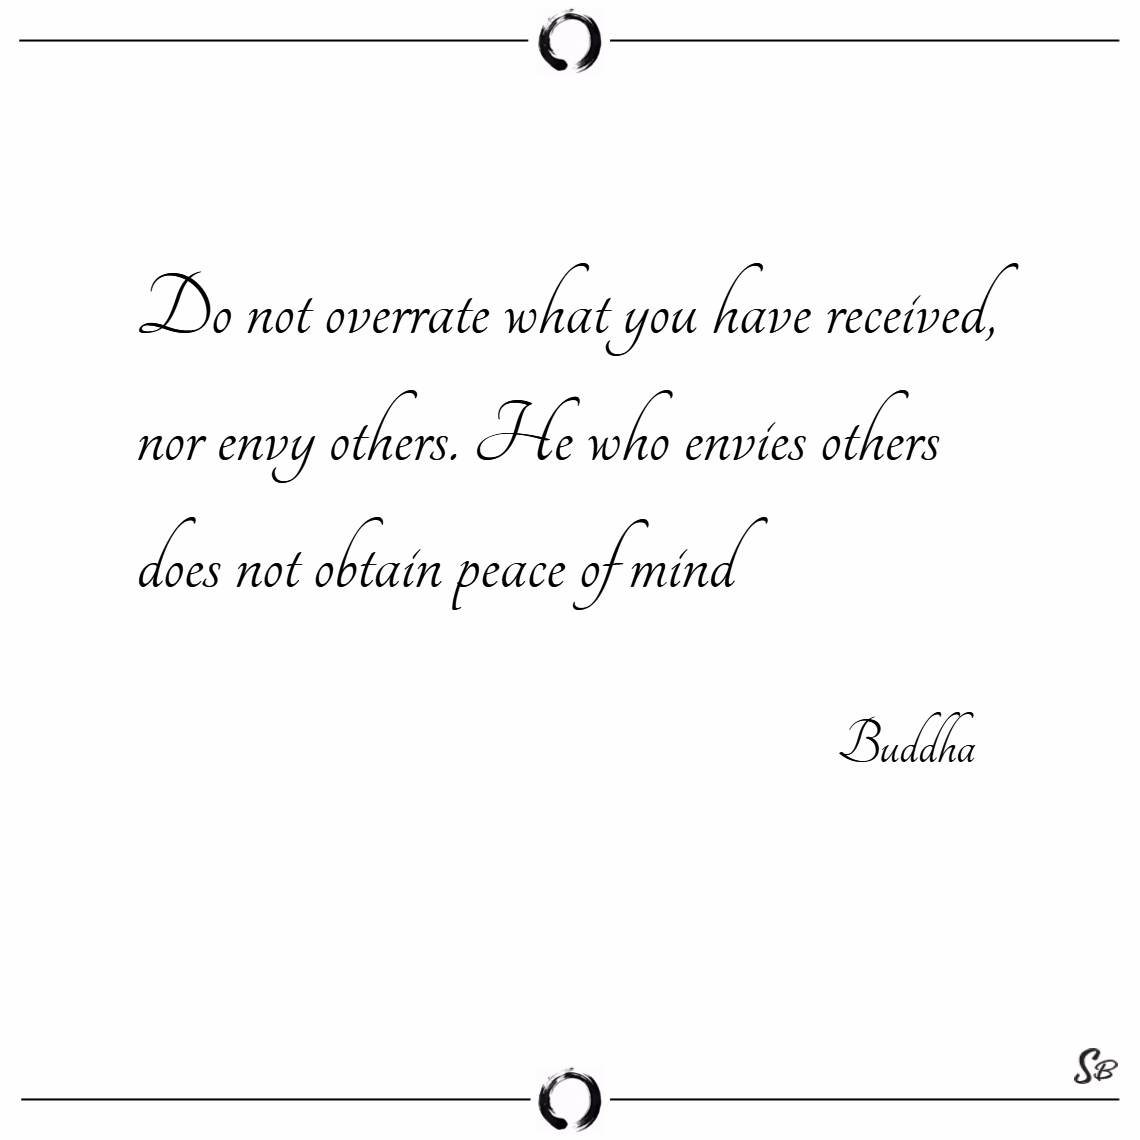 Do not overrate what you have received, nor envy others. he who envies others does not obtain peace of mind. – buddha Envy quotes